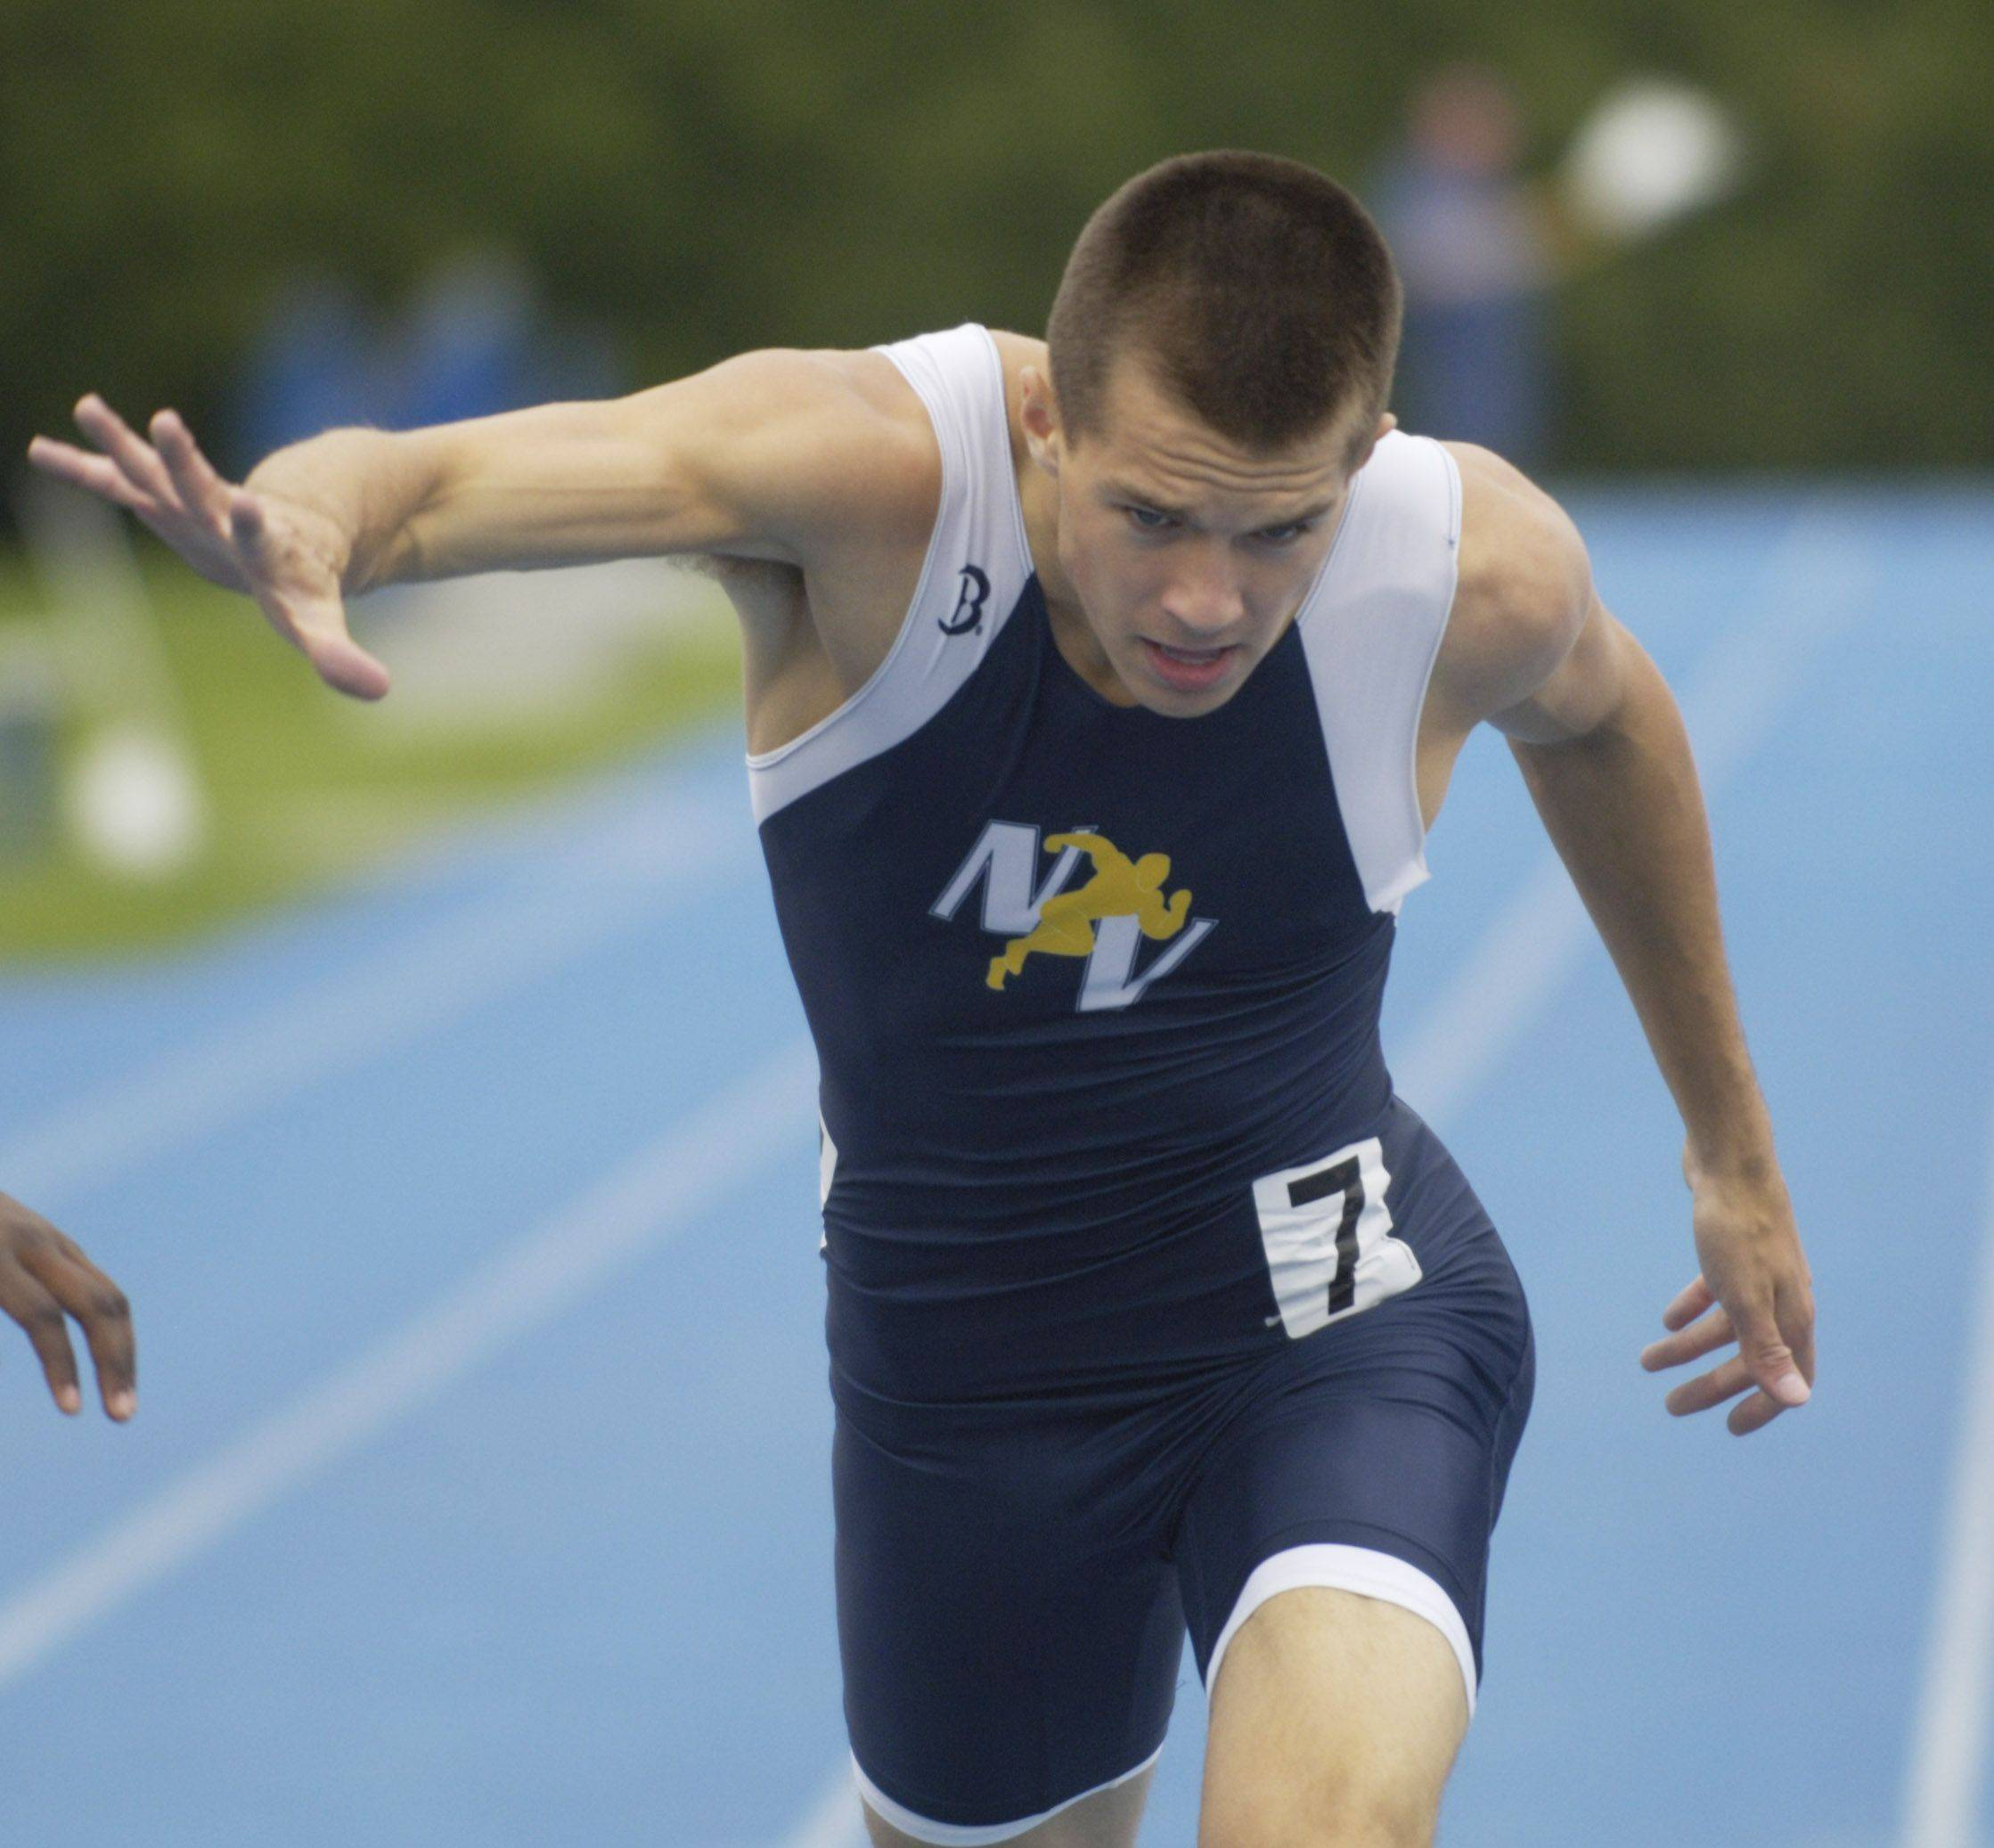 Neuqua Valley's Jacob Bender lunges toward the finish line in the class 3A 400-meter dash during the boys state track finals in Charleston Saturday.